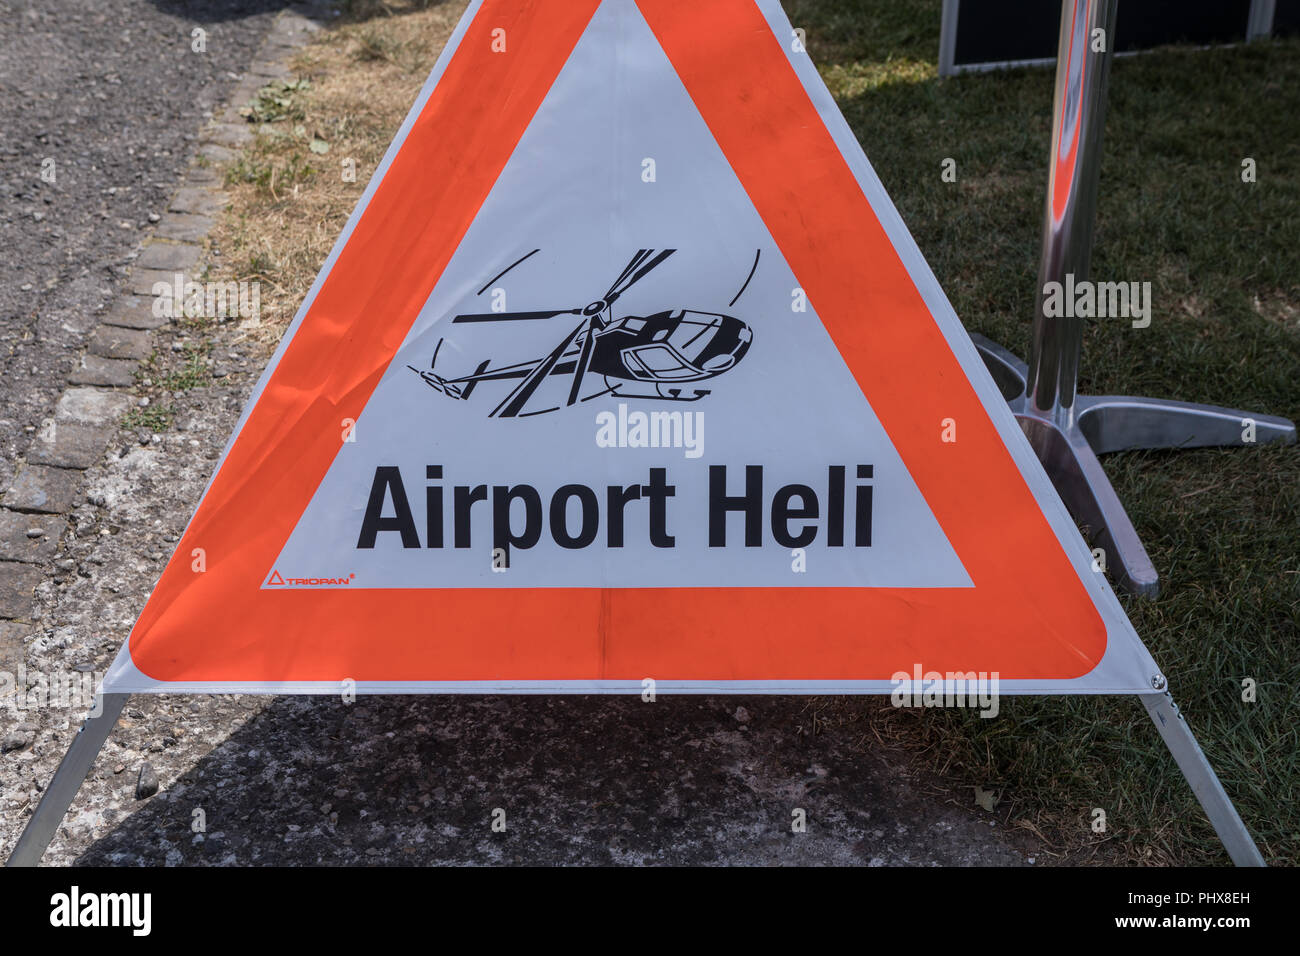 Warning triangle with airport heli - Stock Image